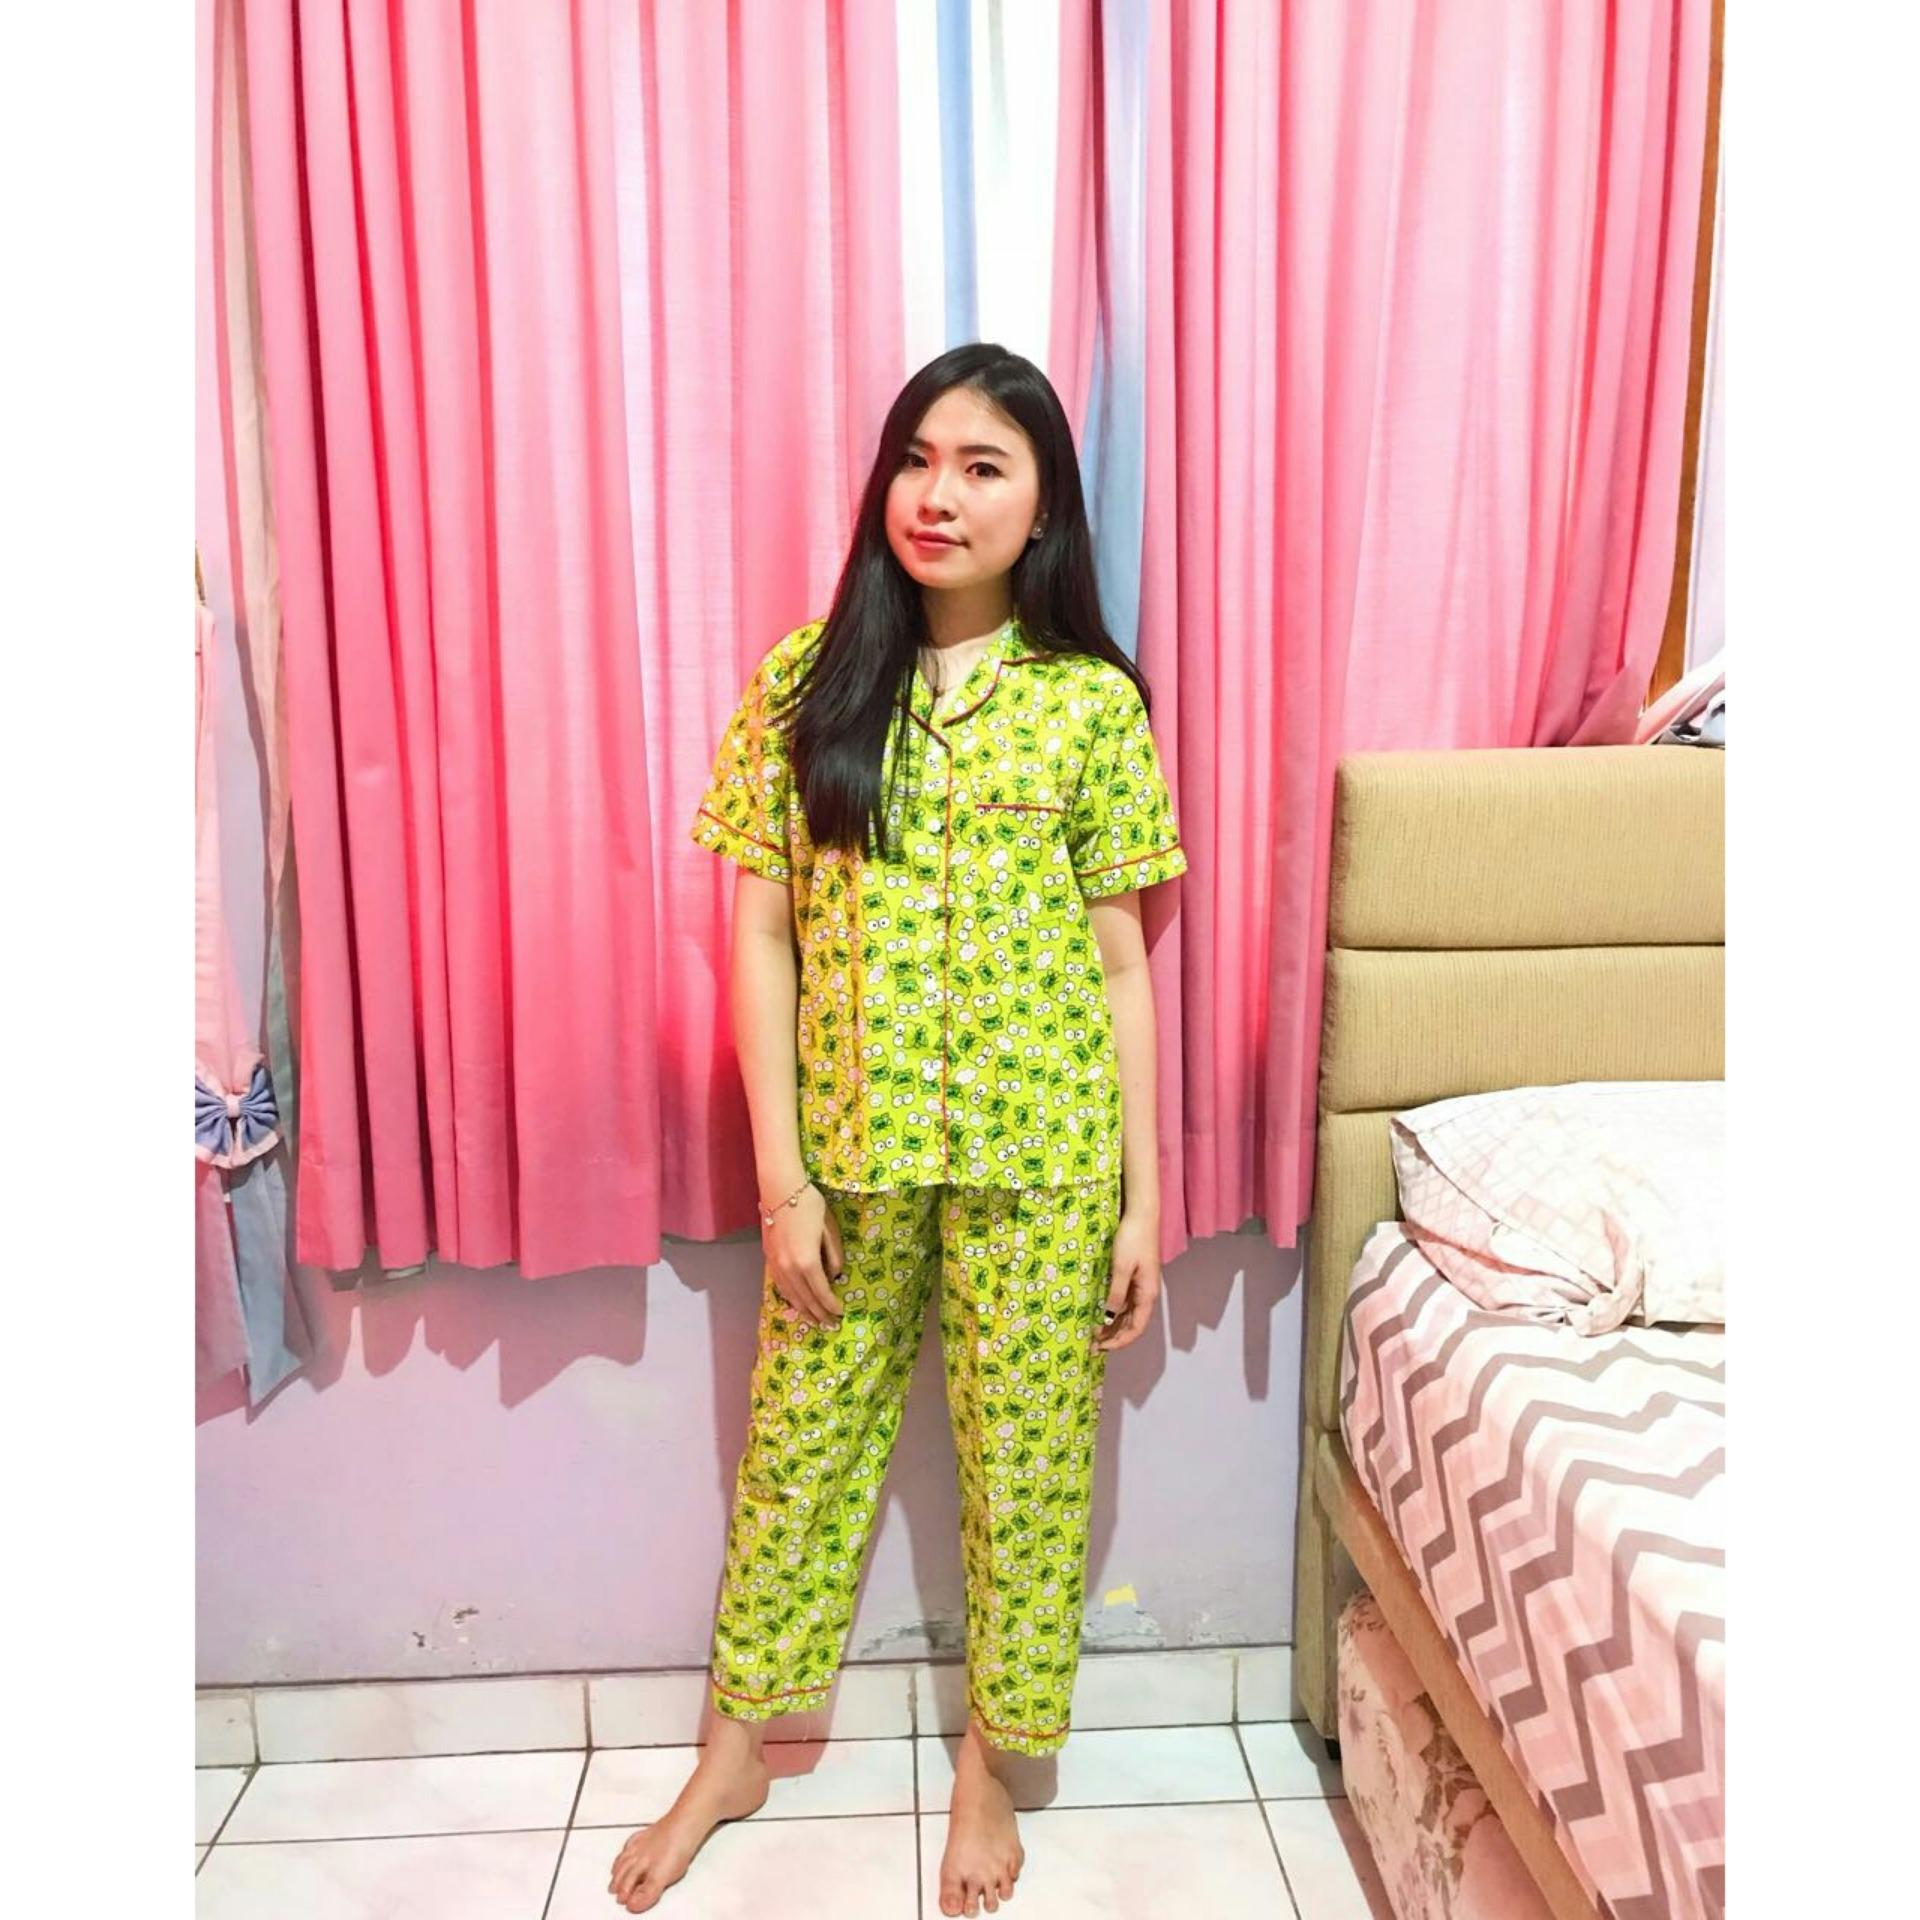 Harga Media Fashion Shop Baju Tidur Wanita Piyama Longpants Motif Little Keropi Lembut Dingin Bagus Laris Murah Bahan Katun Import All Size Ld 104 106 Best Seller Media Fashion Shop Terbaik